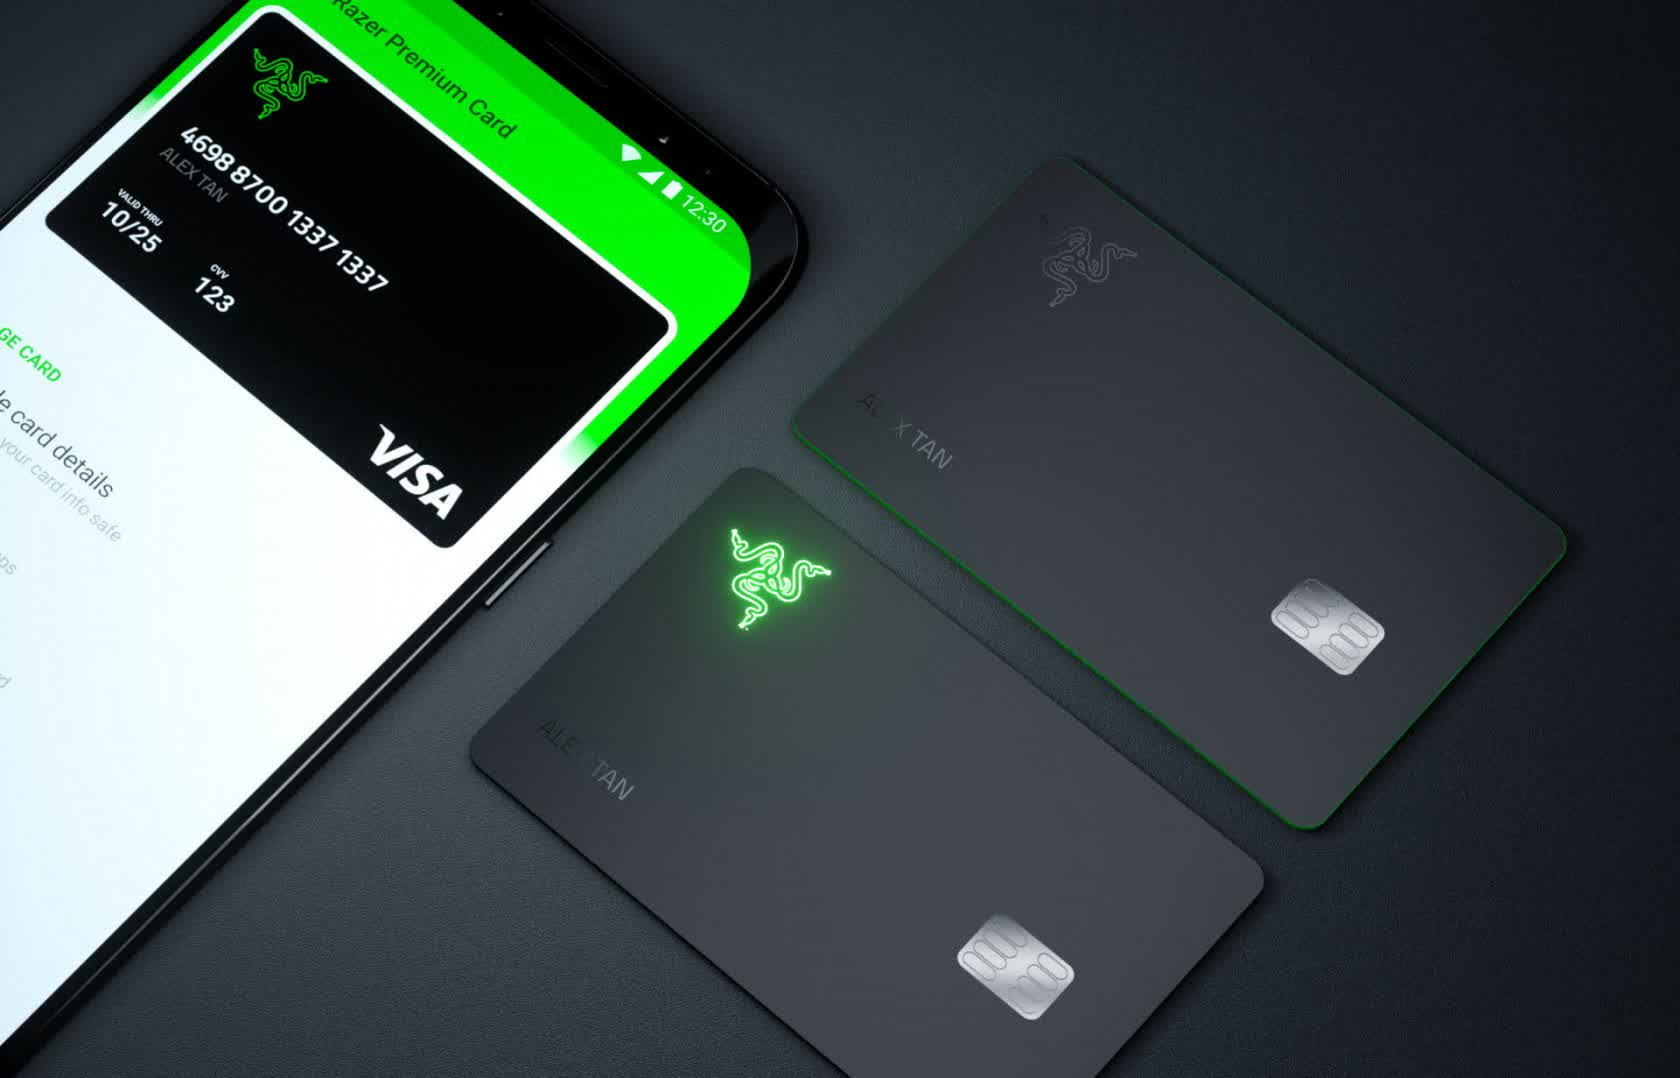 Razer is launching a pre-paid Visa card... with a built-in LED, of course